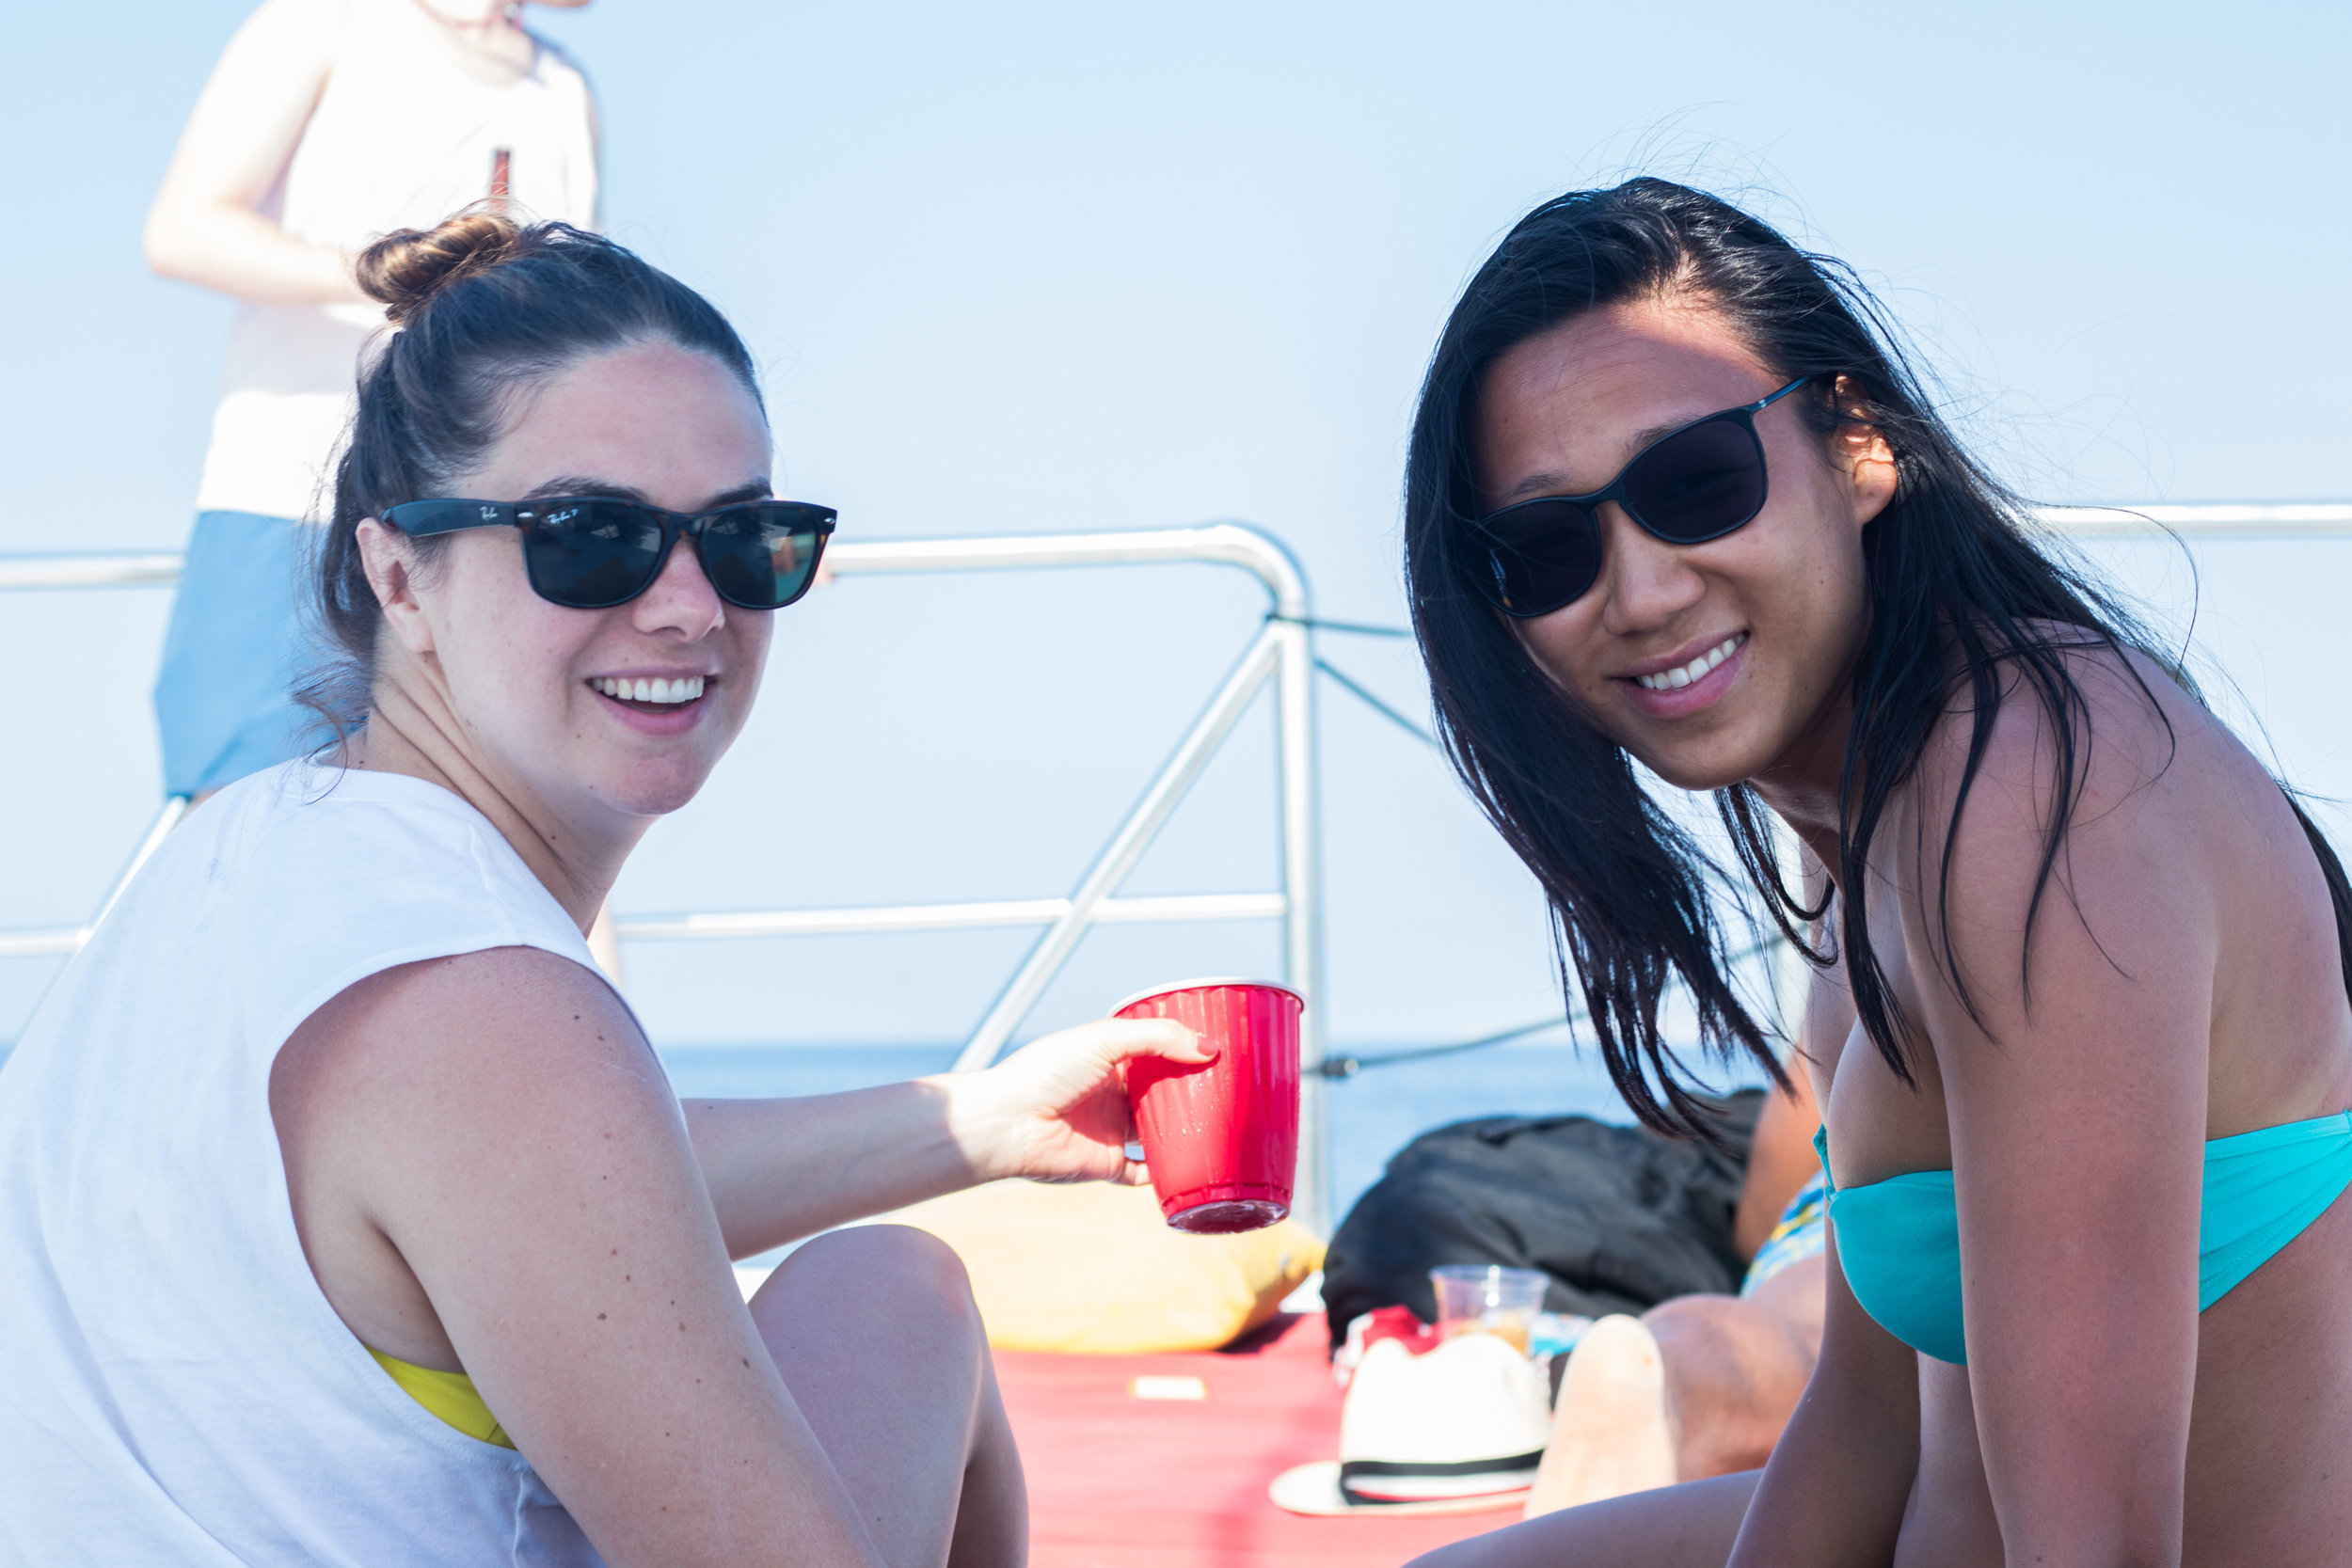 Meaghan and Christine sailing the high seas.